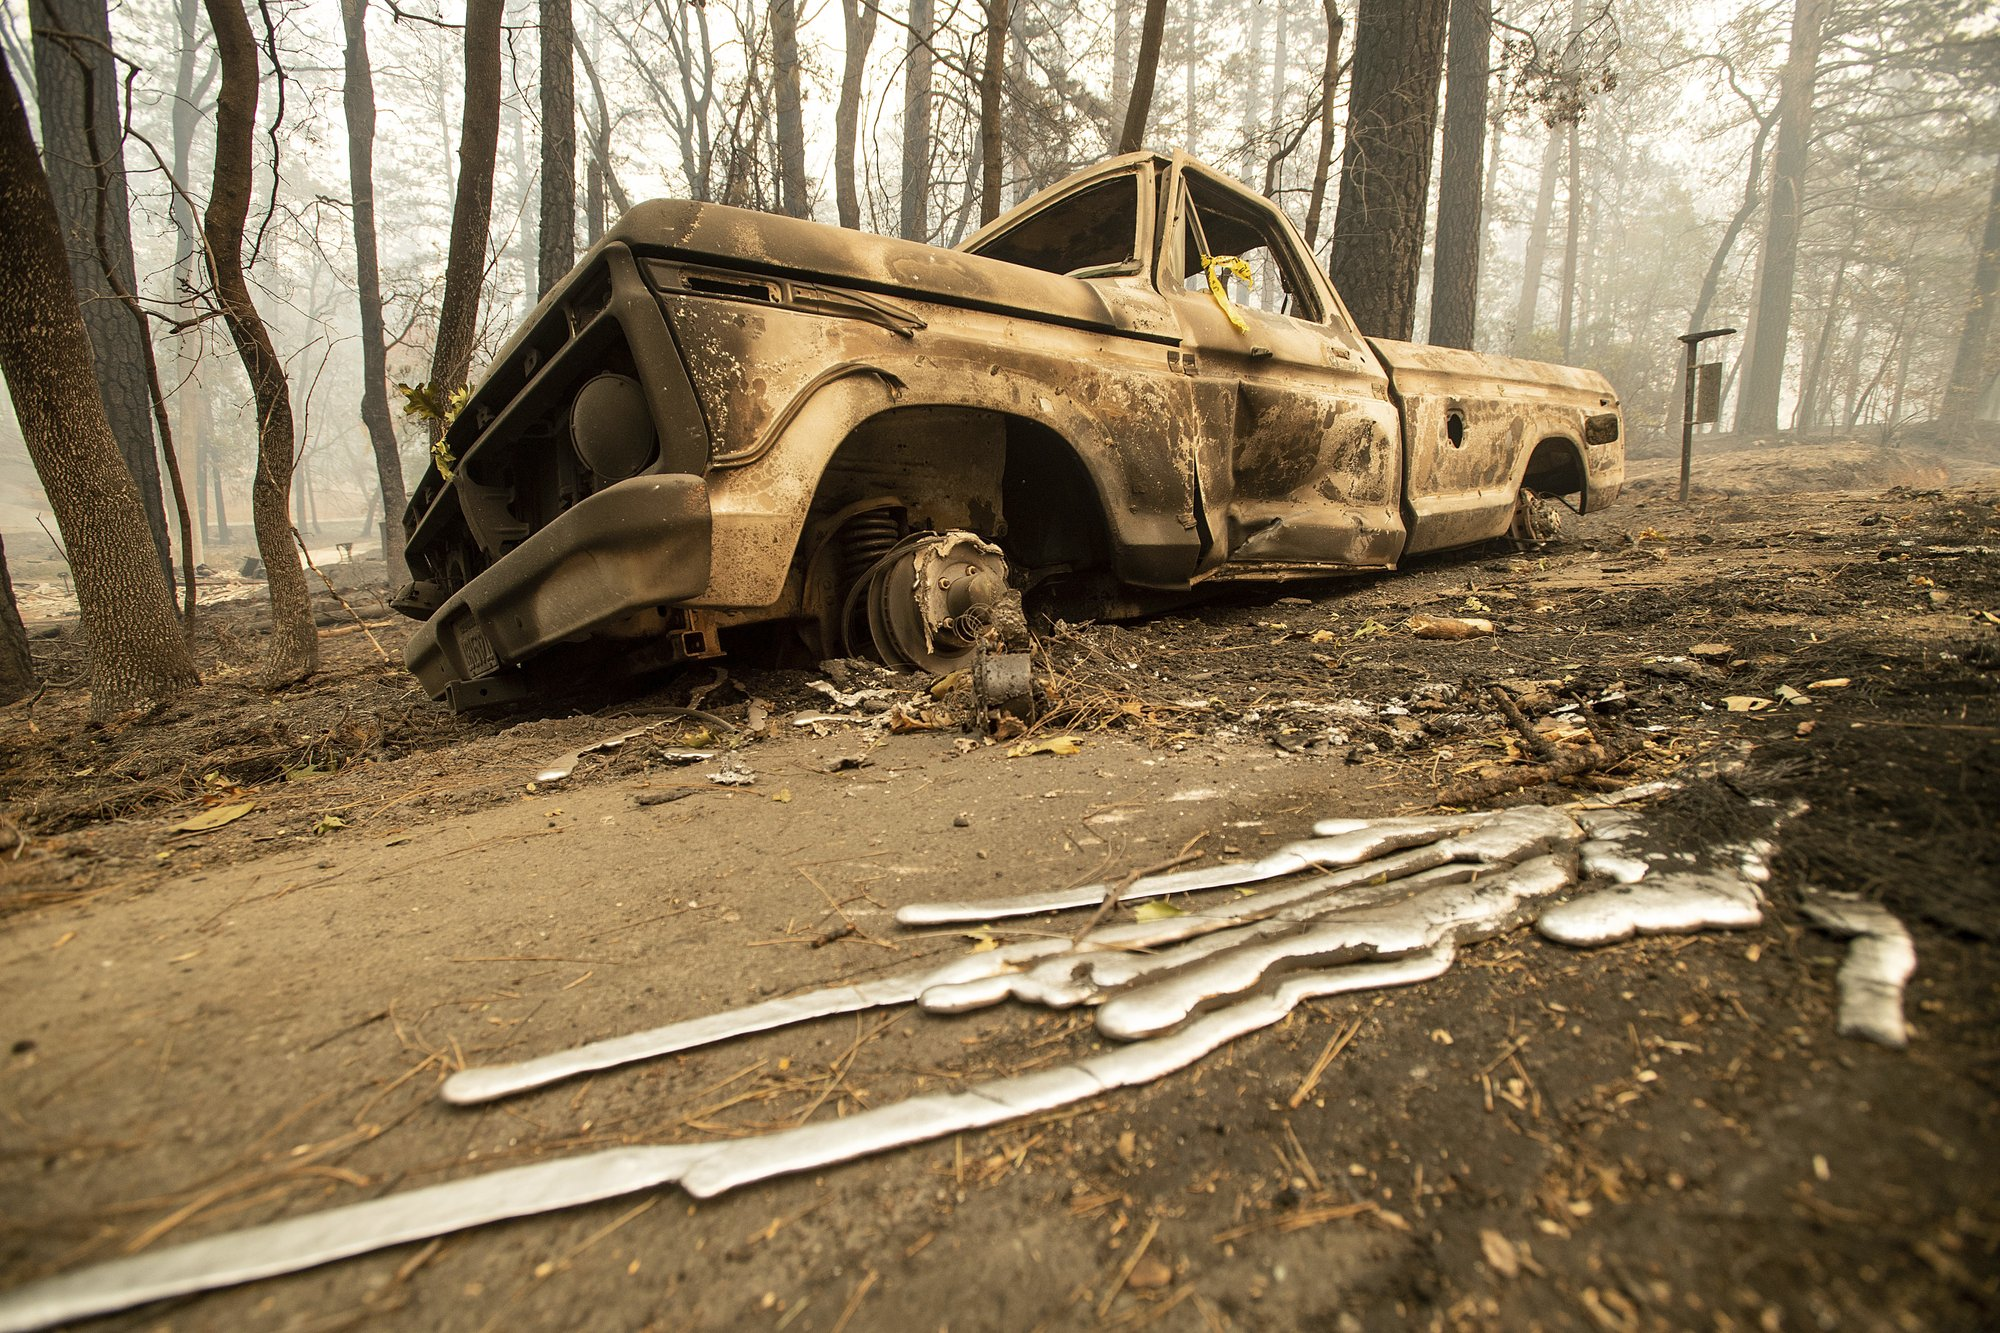 A burned pick-up truck rests on Pearson Rd. after the wildfire burned through Paradise, Calif., on Saturday, Nov. 10, 2018. Photo: AP